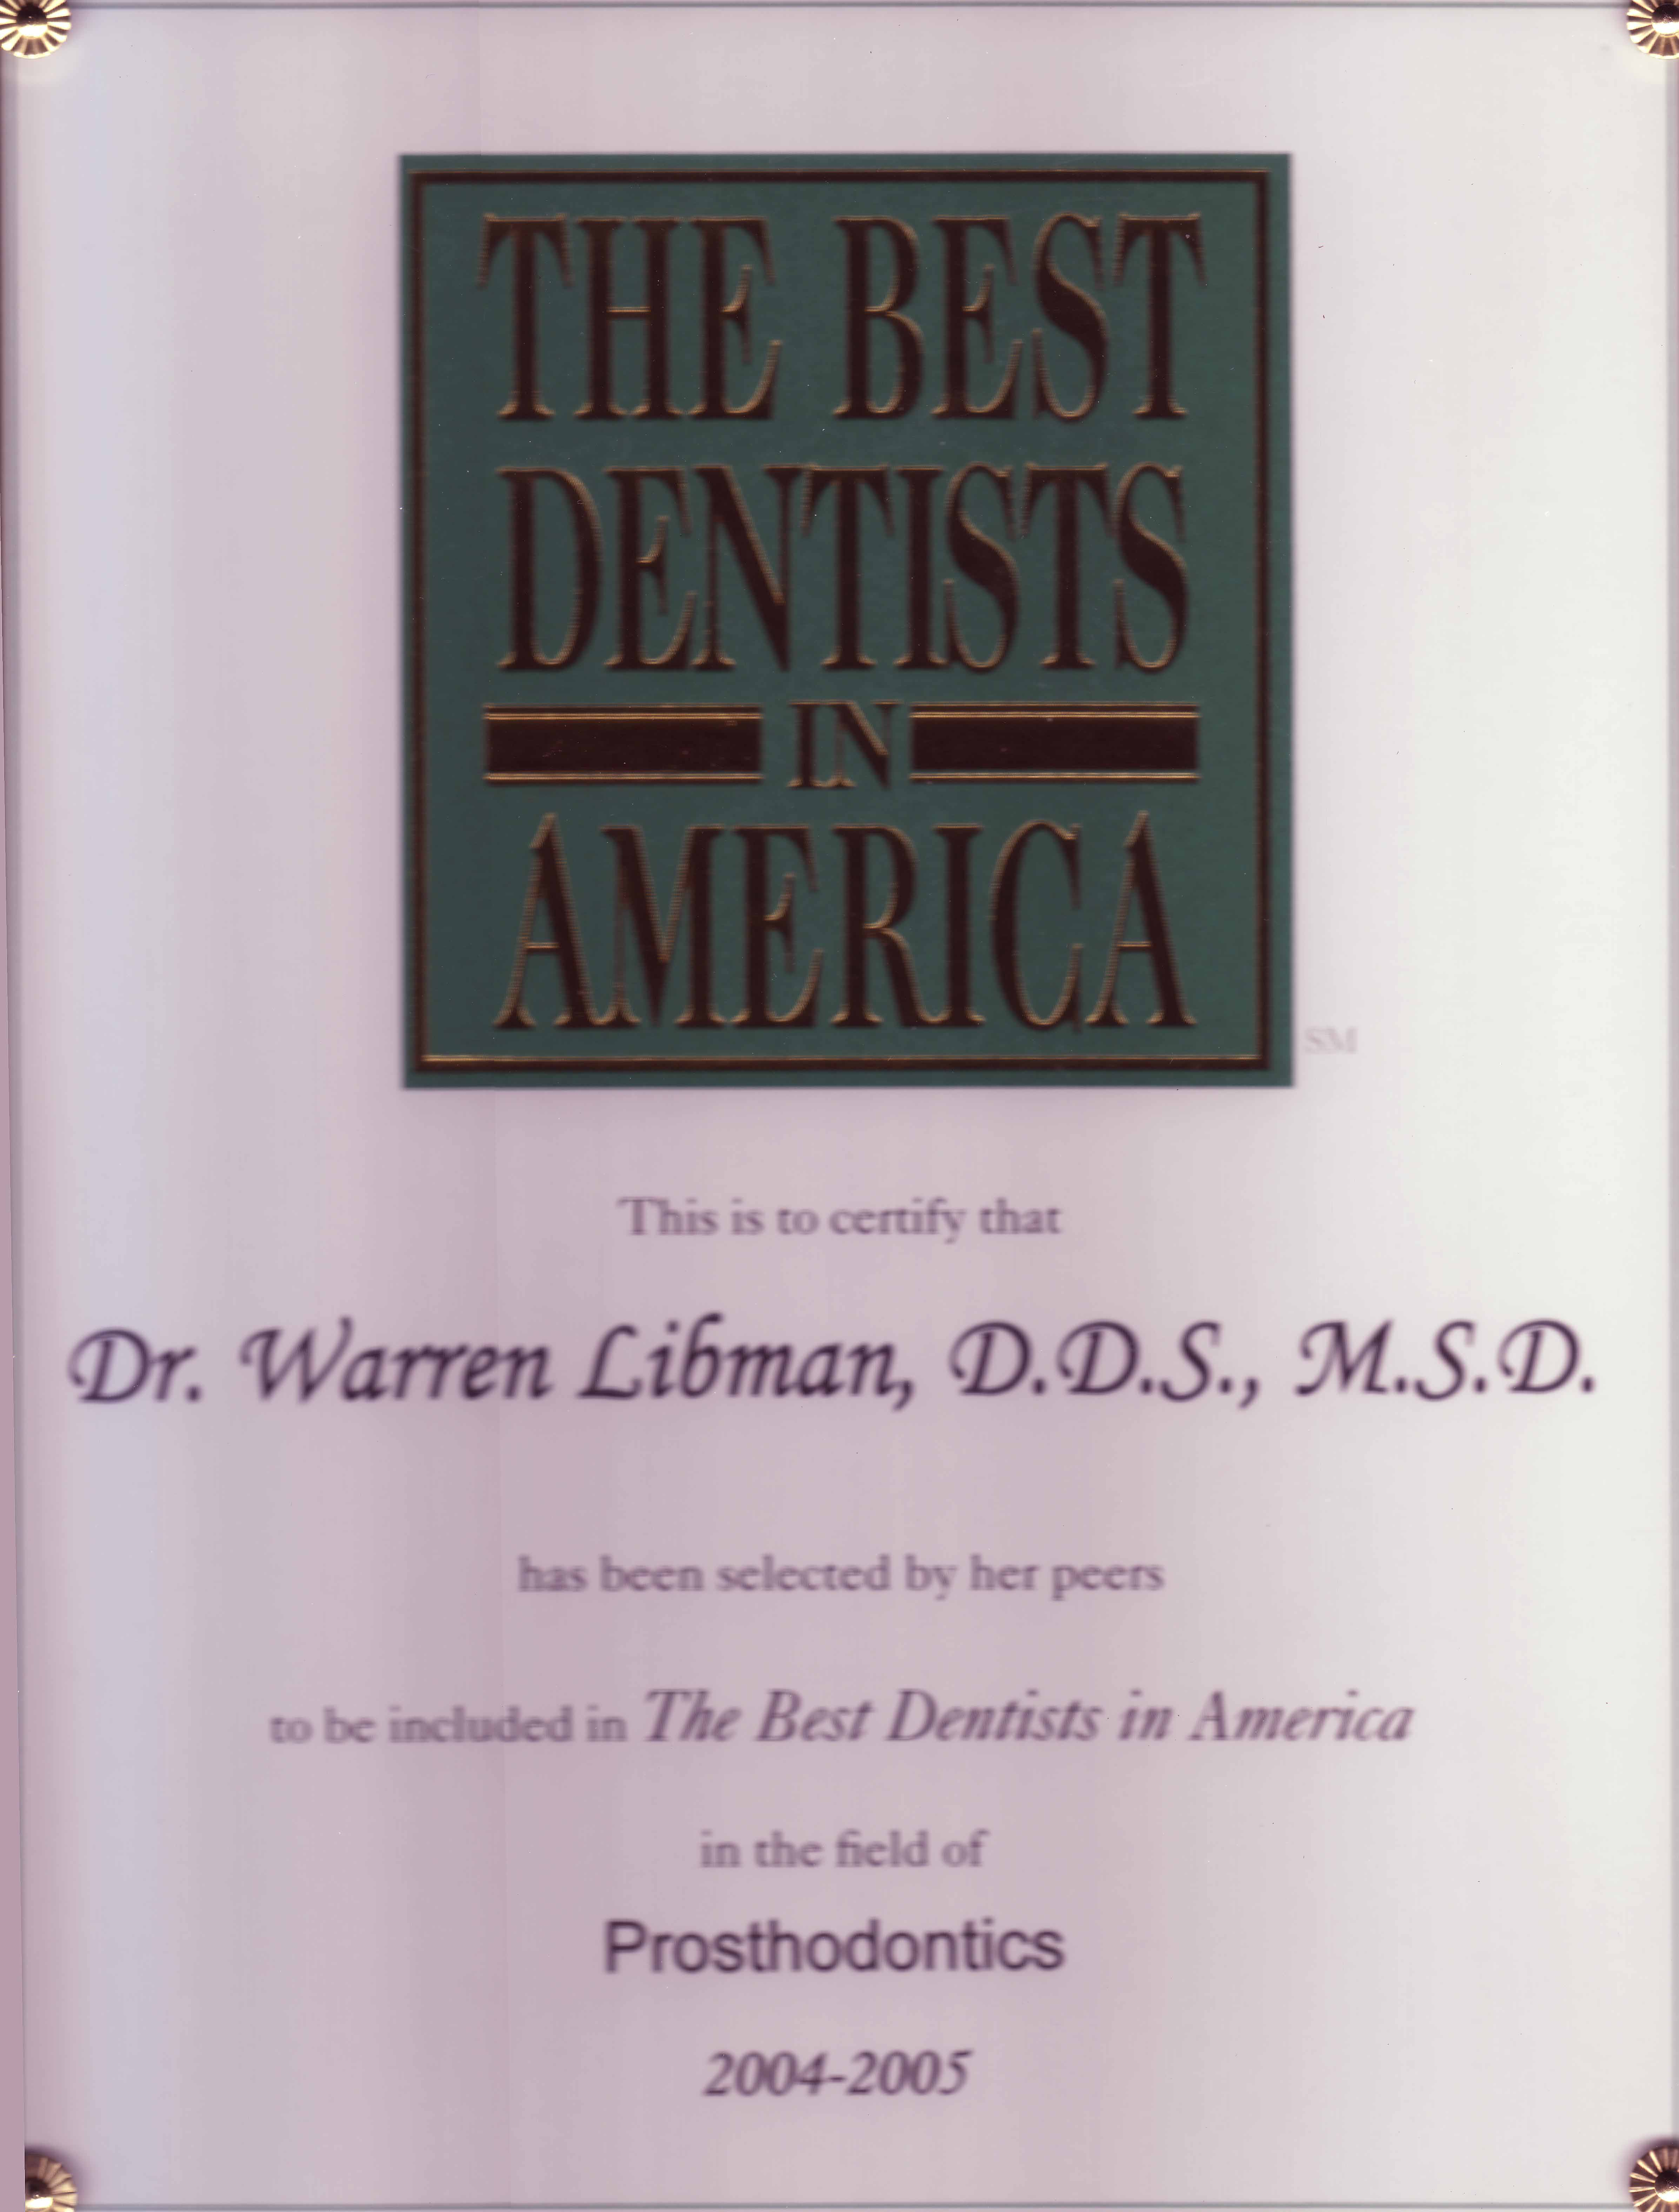 The Best Dentists in America 2004-2005